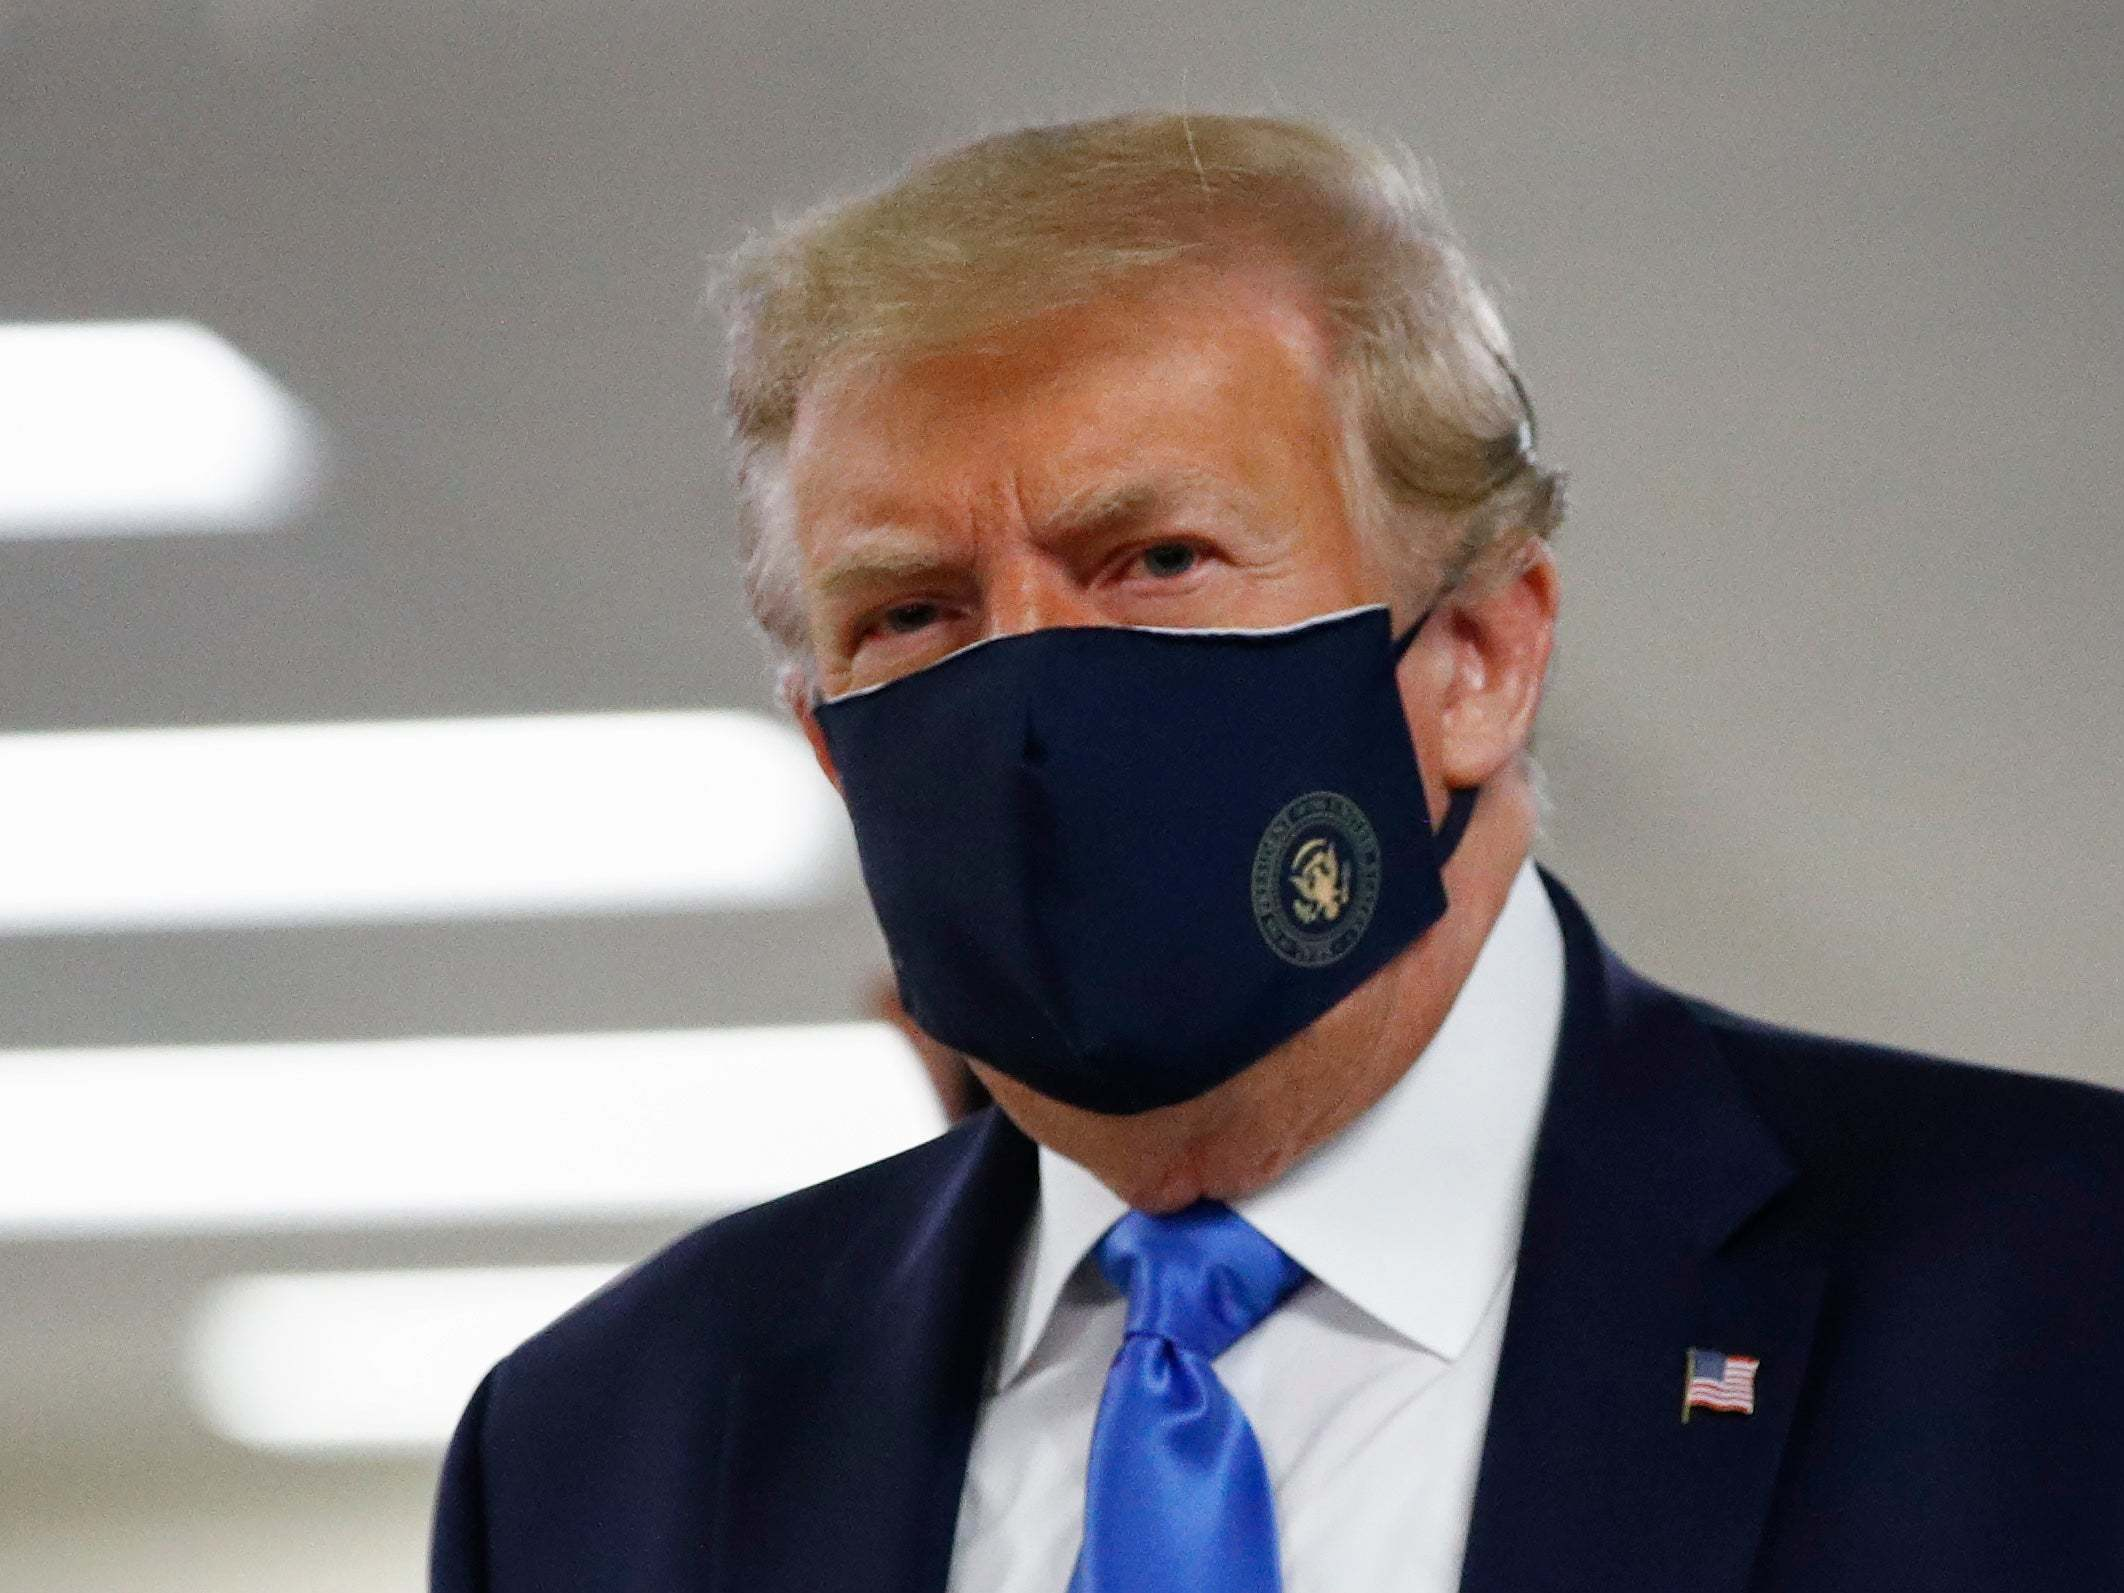 Trump news live: Latest 2020 election and Twitter updates as president says 'shouldn't be hard' for Kanye West to siphon votes from Biden